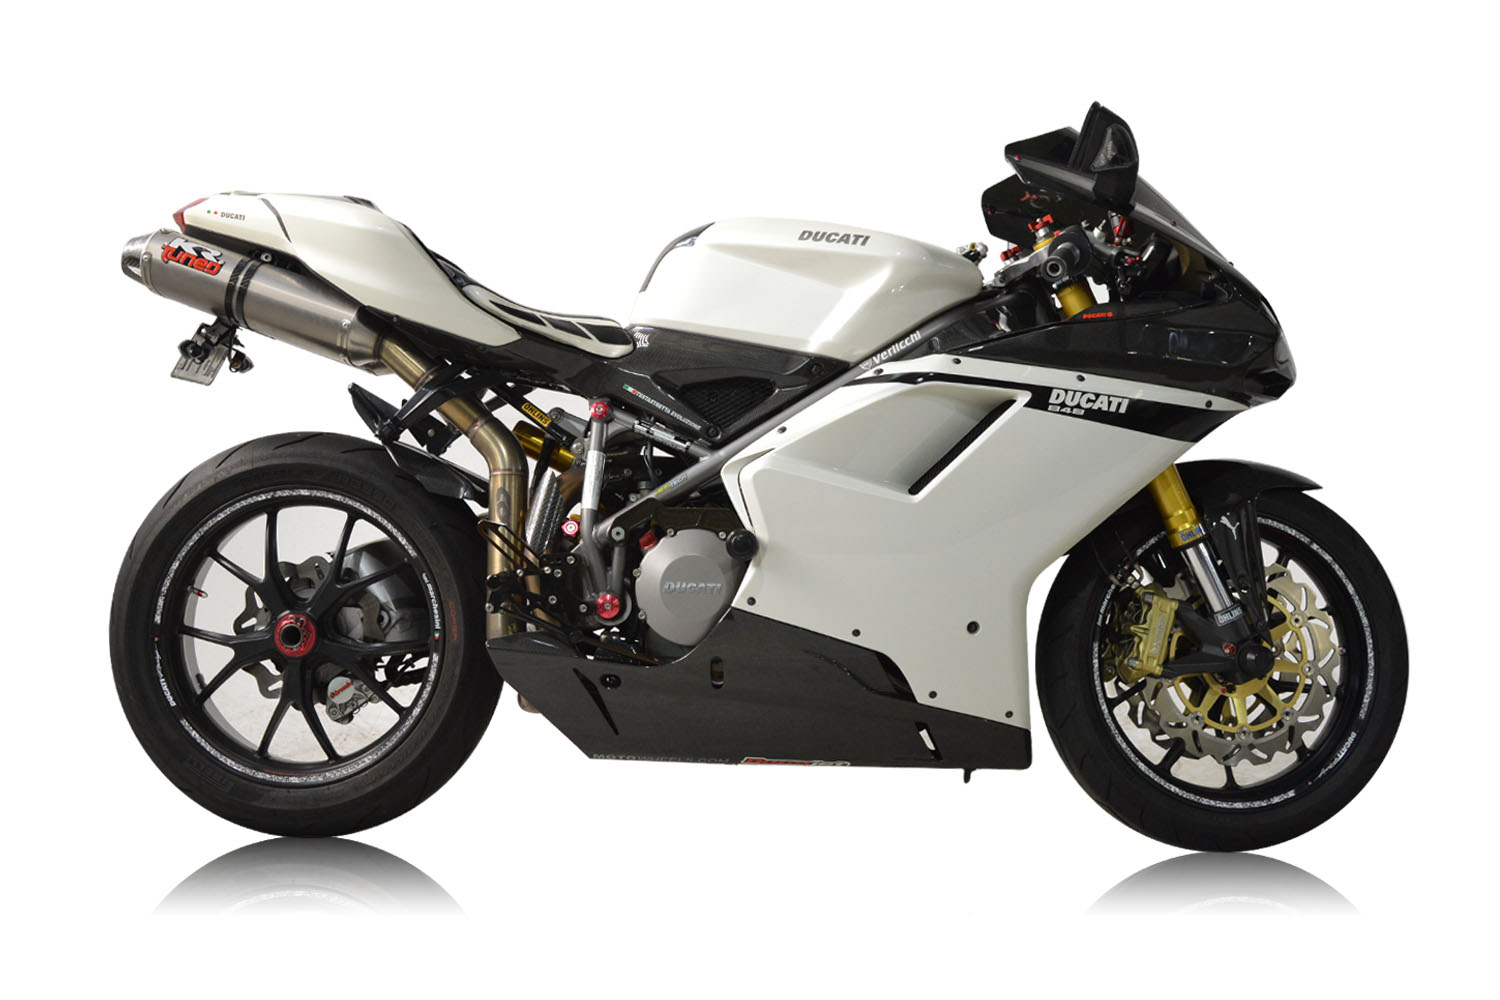 2007 Ducati 848_0040_Background.jpg